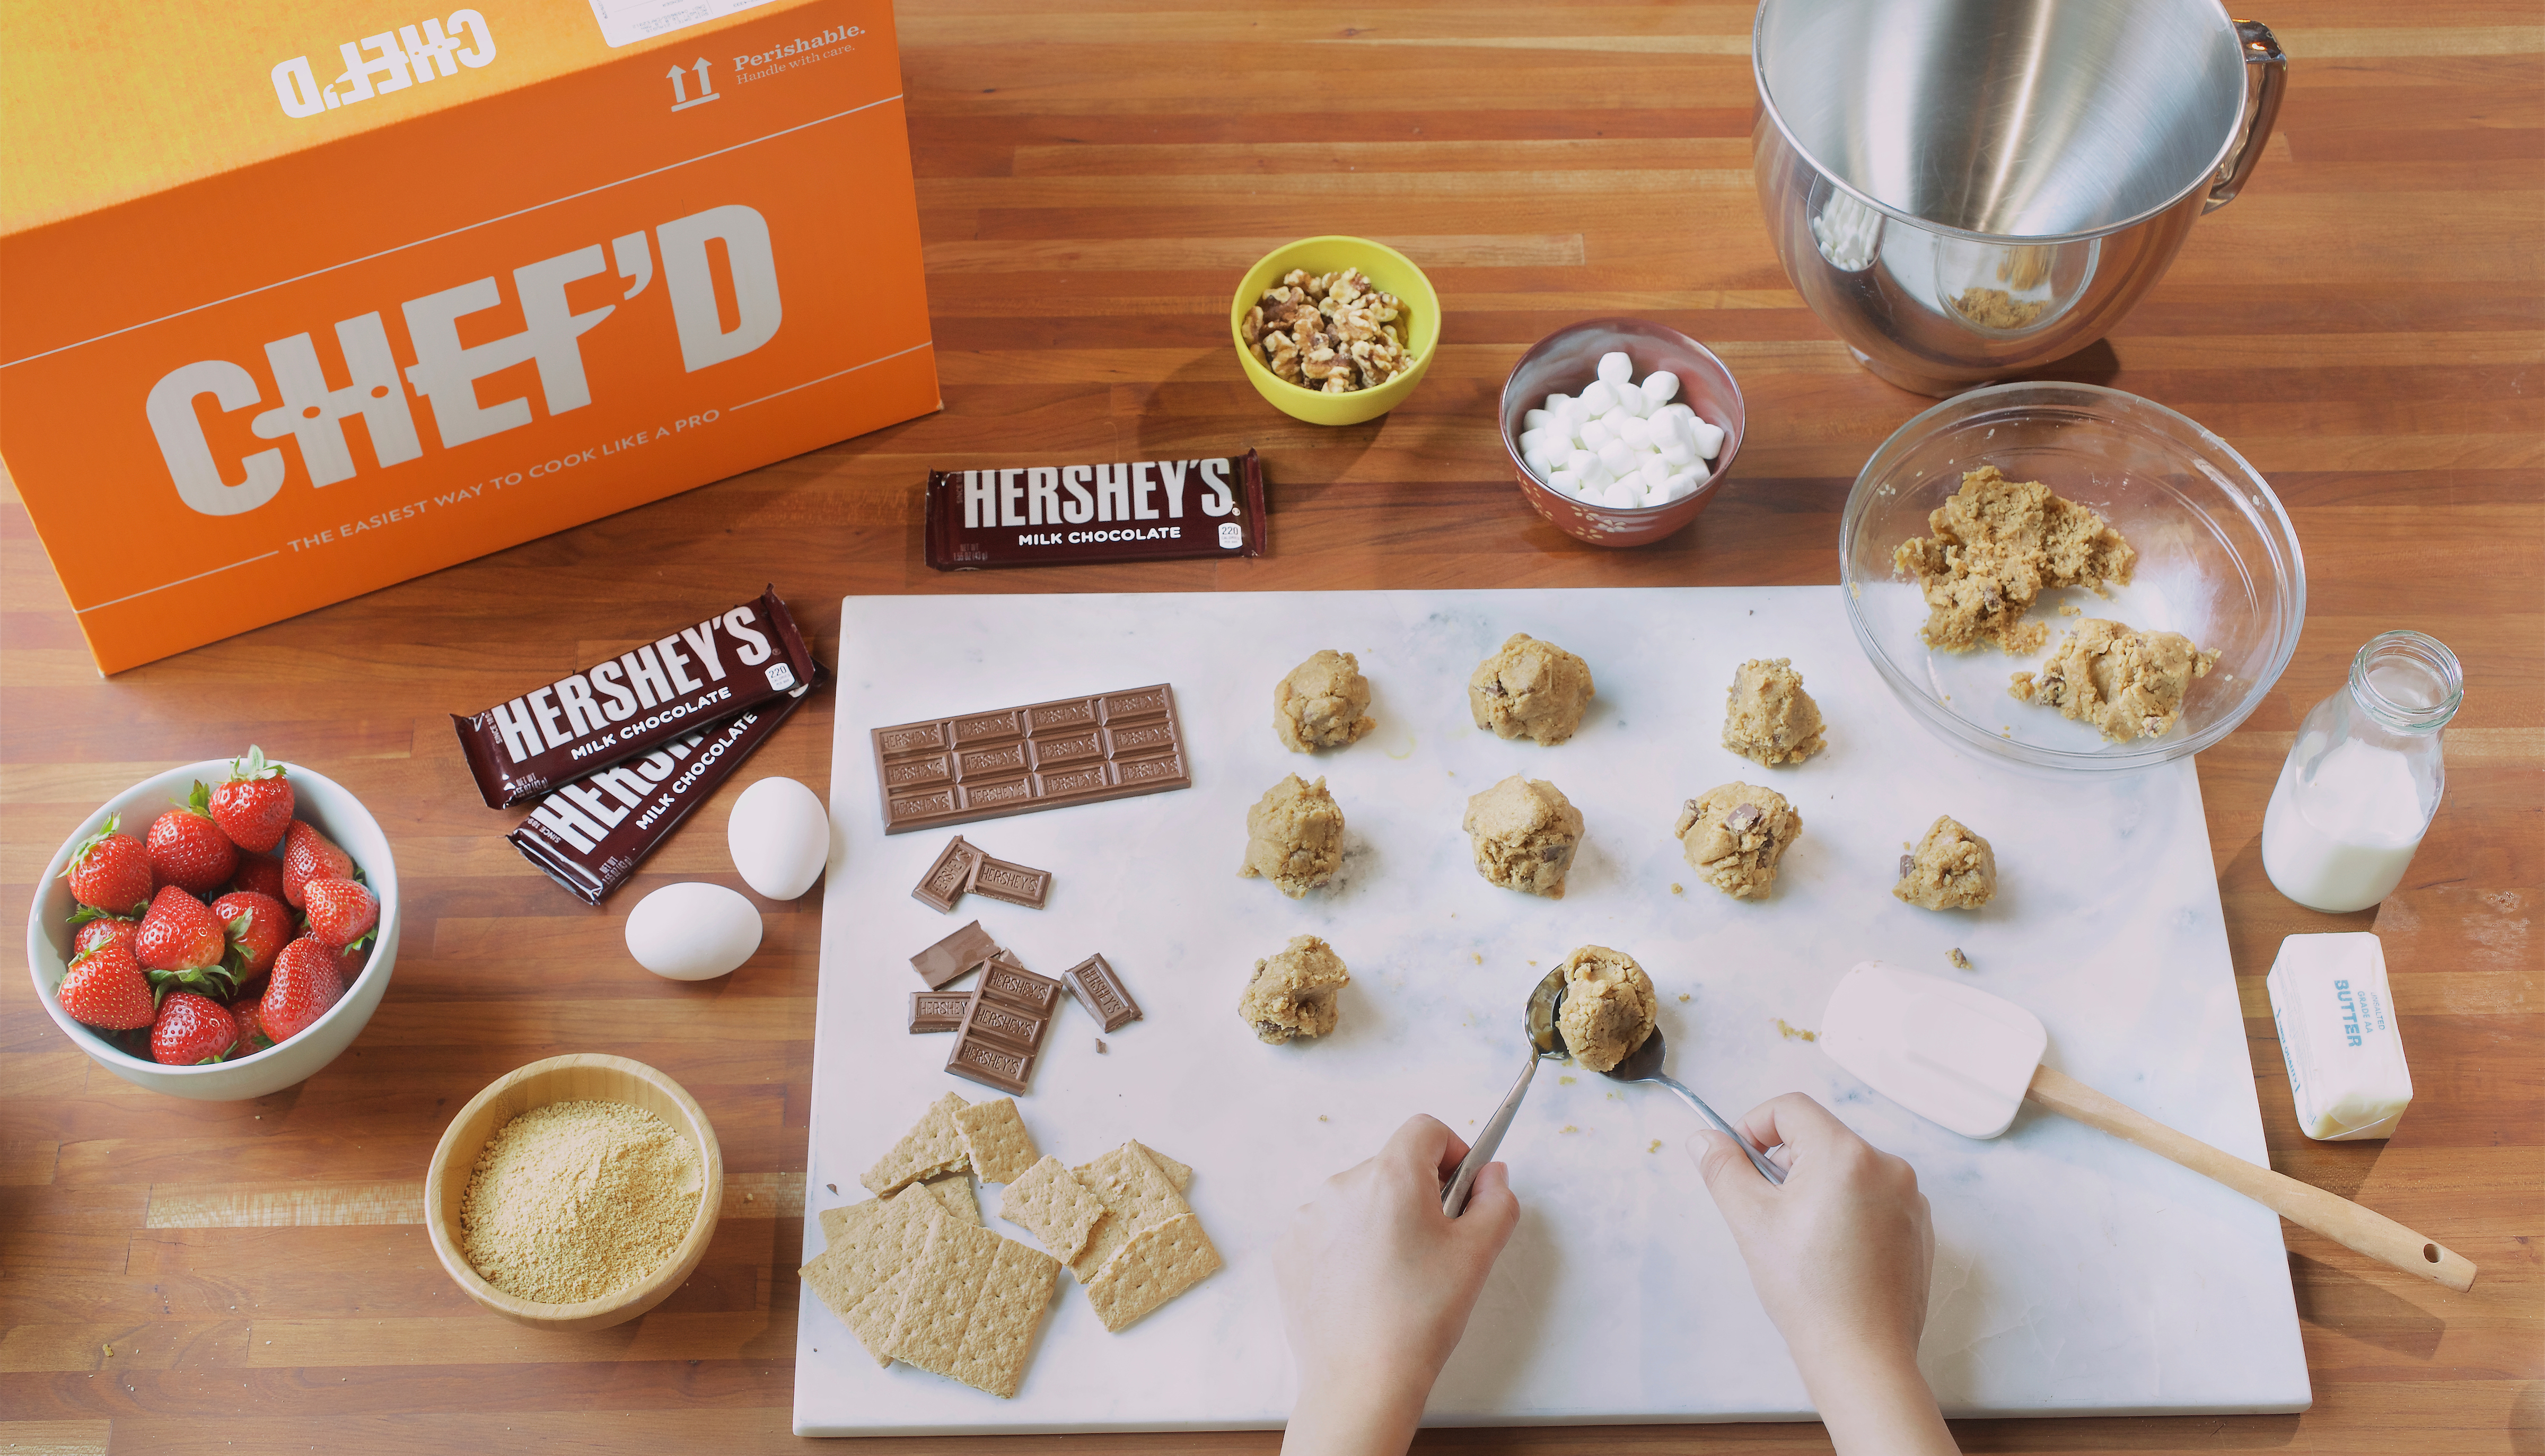 Chef'd and The Hershey Company partner to offer iconic branded desserts to the meal kit market. (Photo: Business Wire)